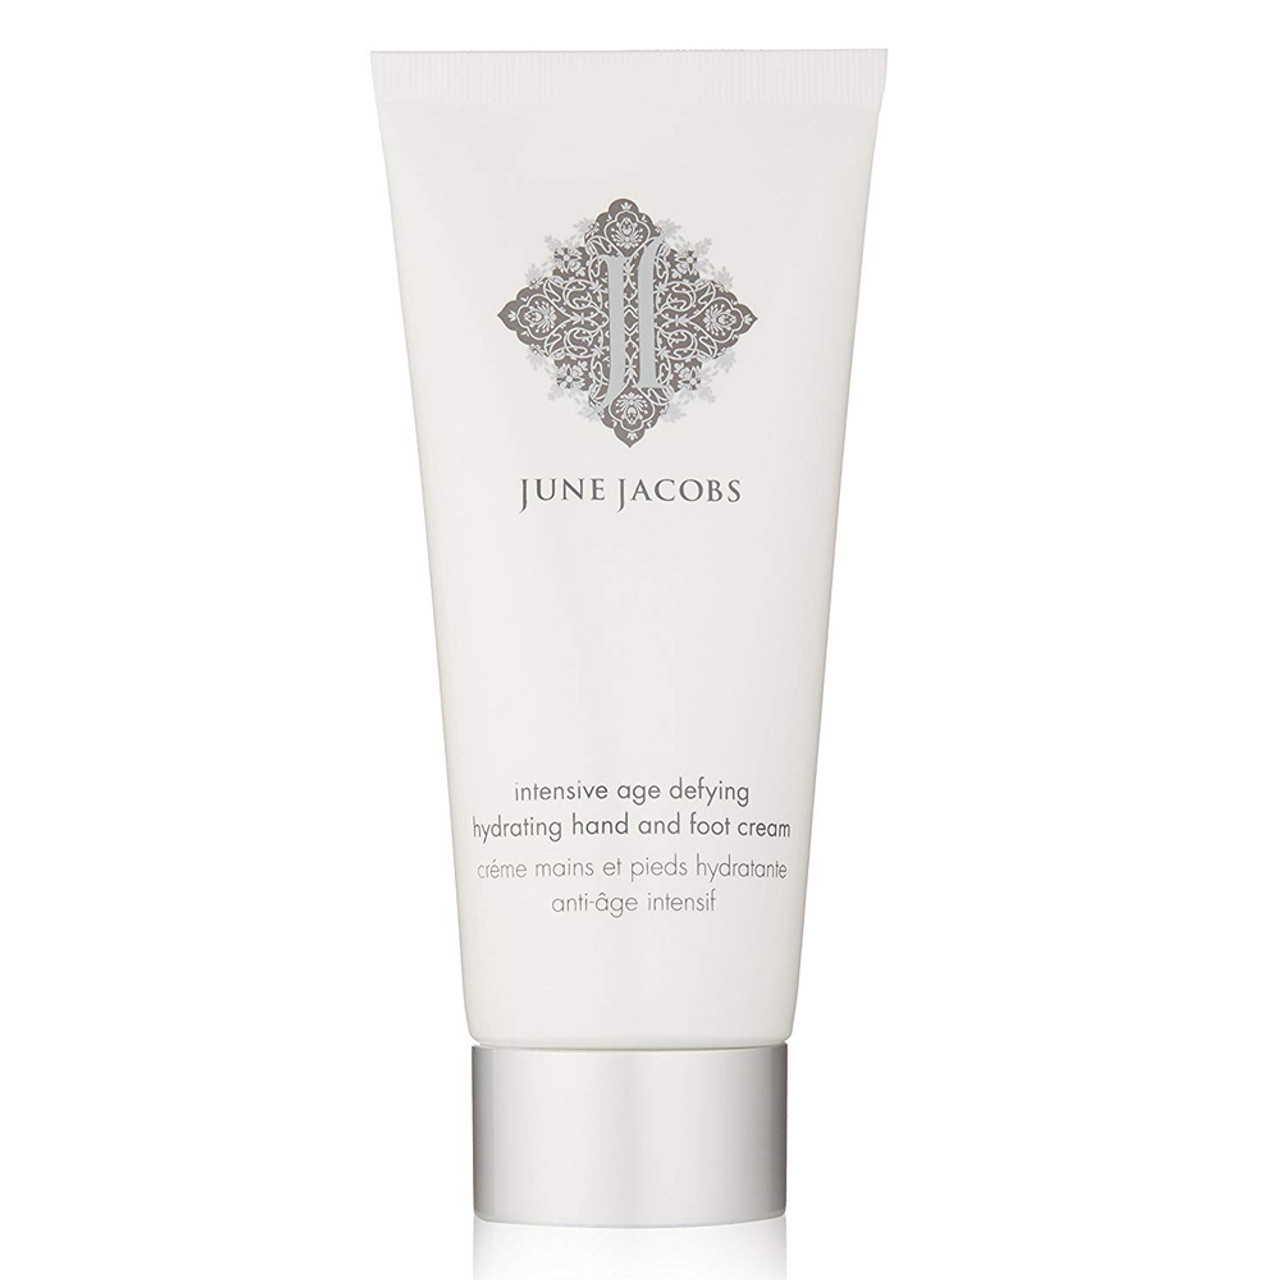 June Jacobs Intensive Age Defying Hydrating Hand and Foot Cream